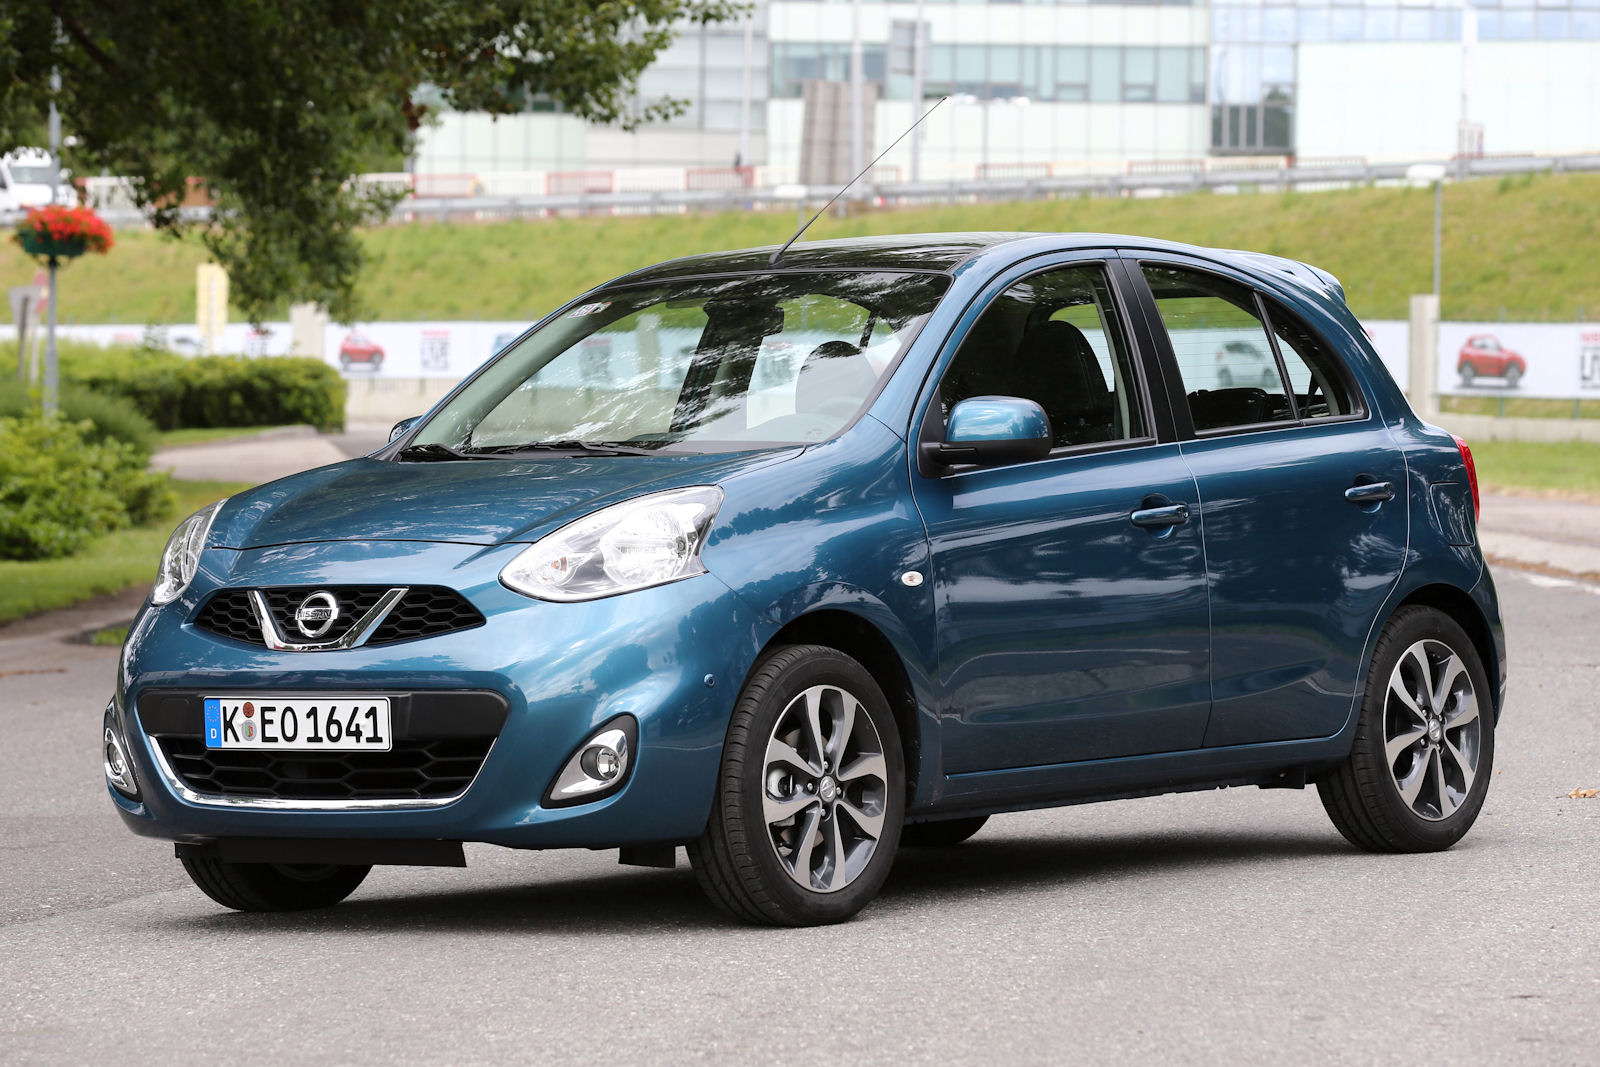 2013 nissan micra k13 pictures information and specs auto. Black Bedroom Furniture Sets. Home Design Ideas